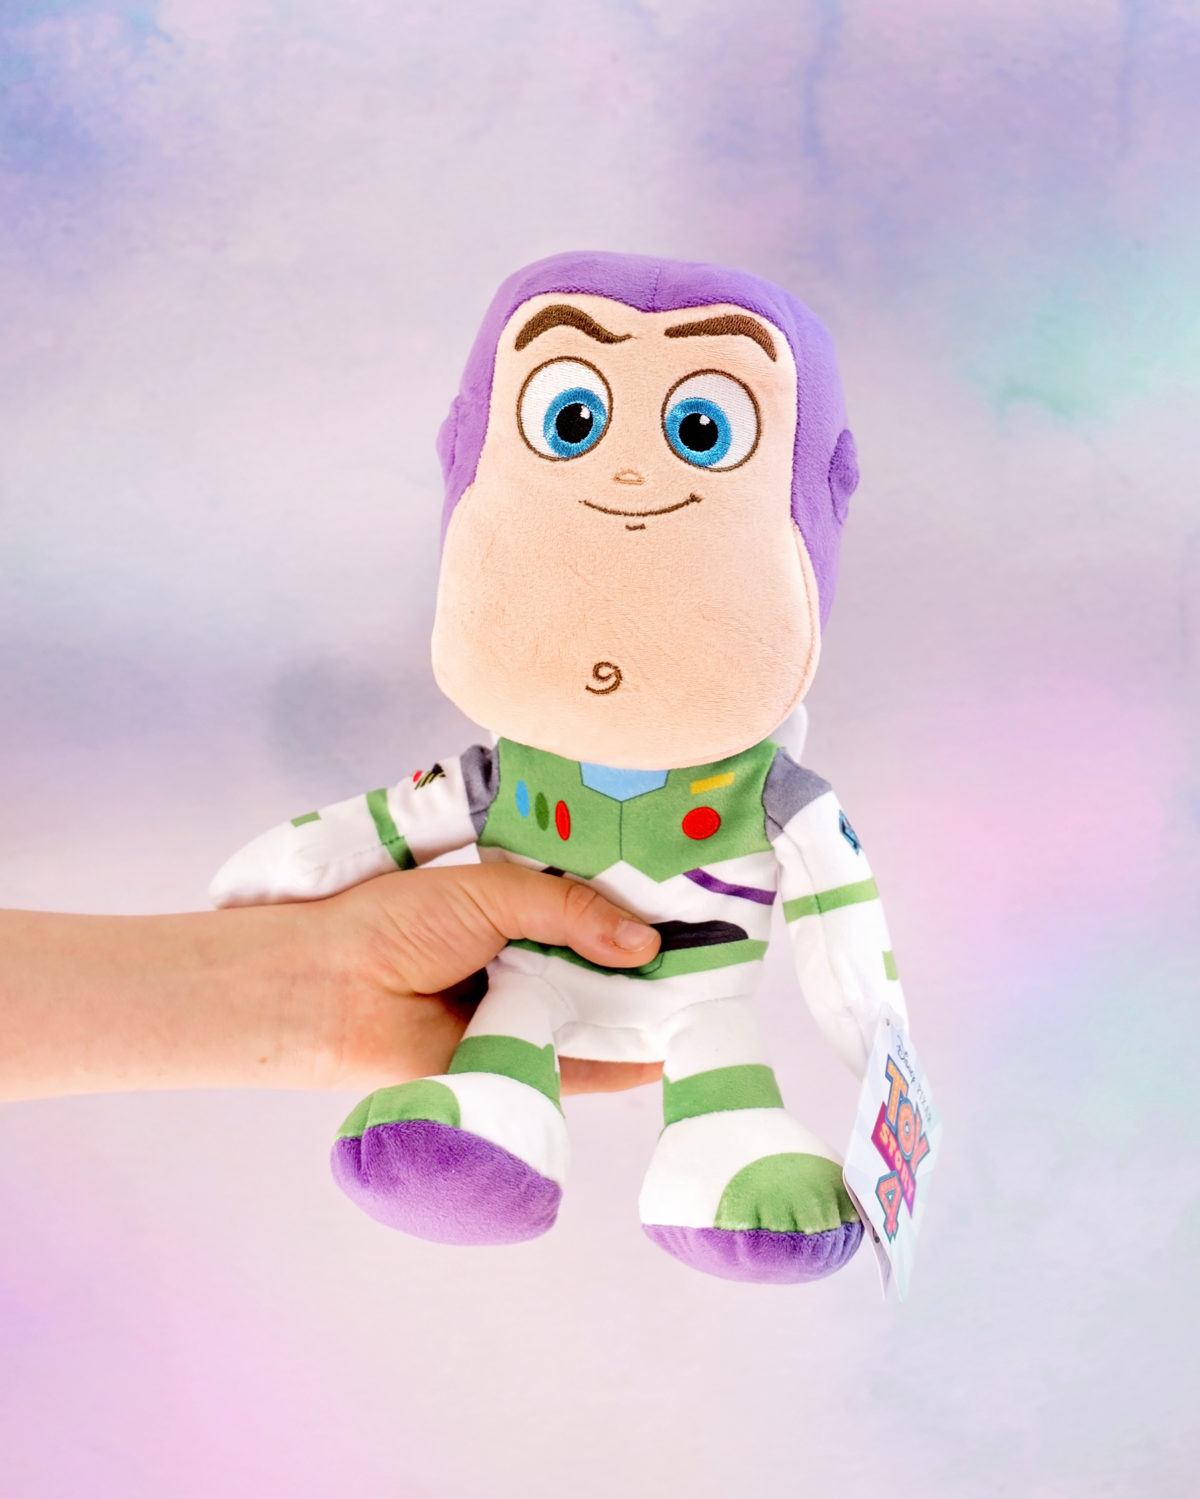 Image shows profile view of Disney Pixar's Toy Story Character Buzz Lightyear as a plush toy from SImba Toys. Image by Keep Up With The Jones Family.